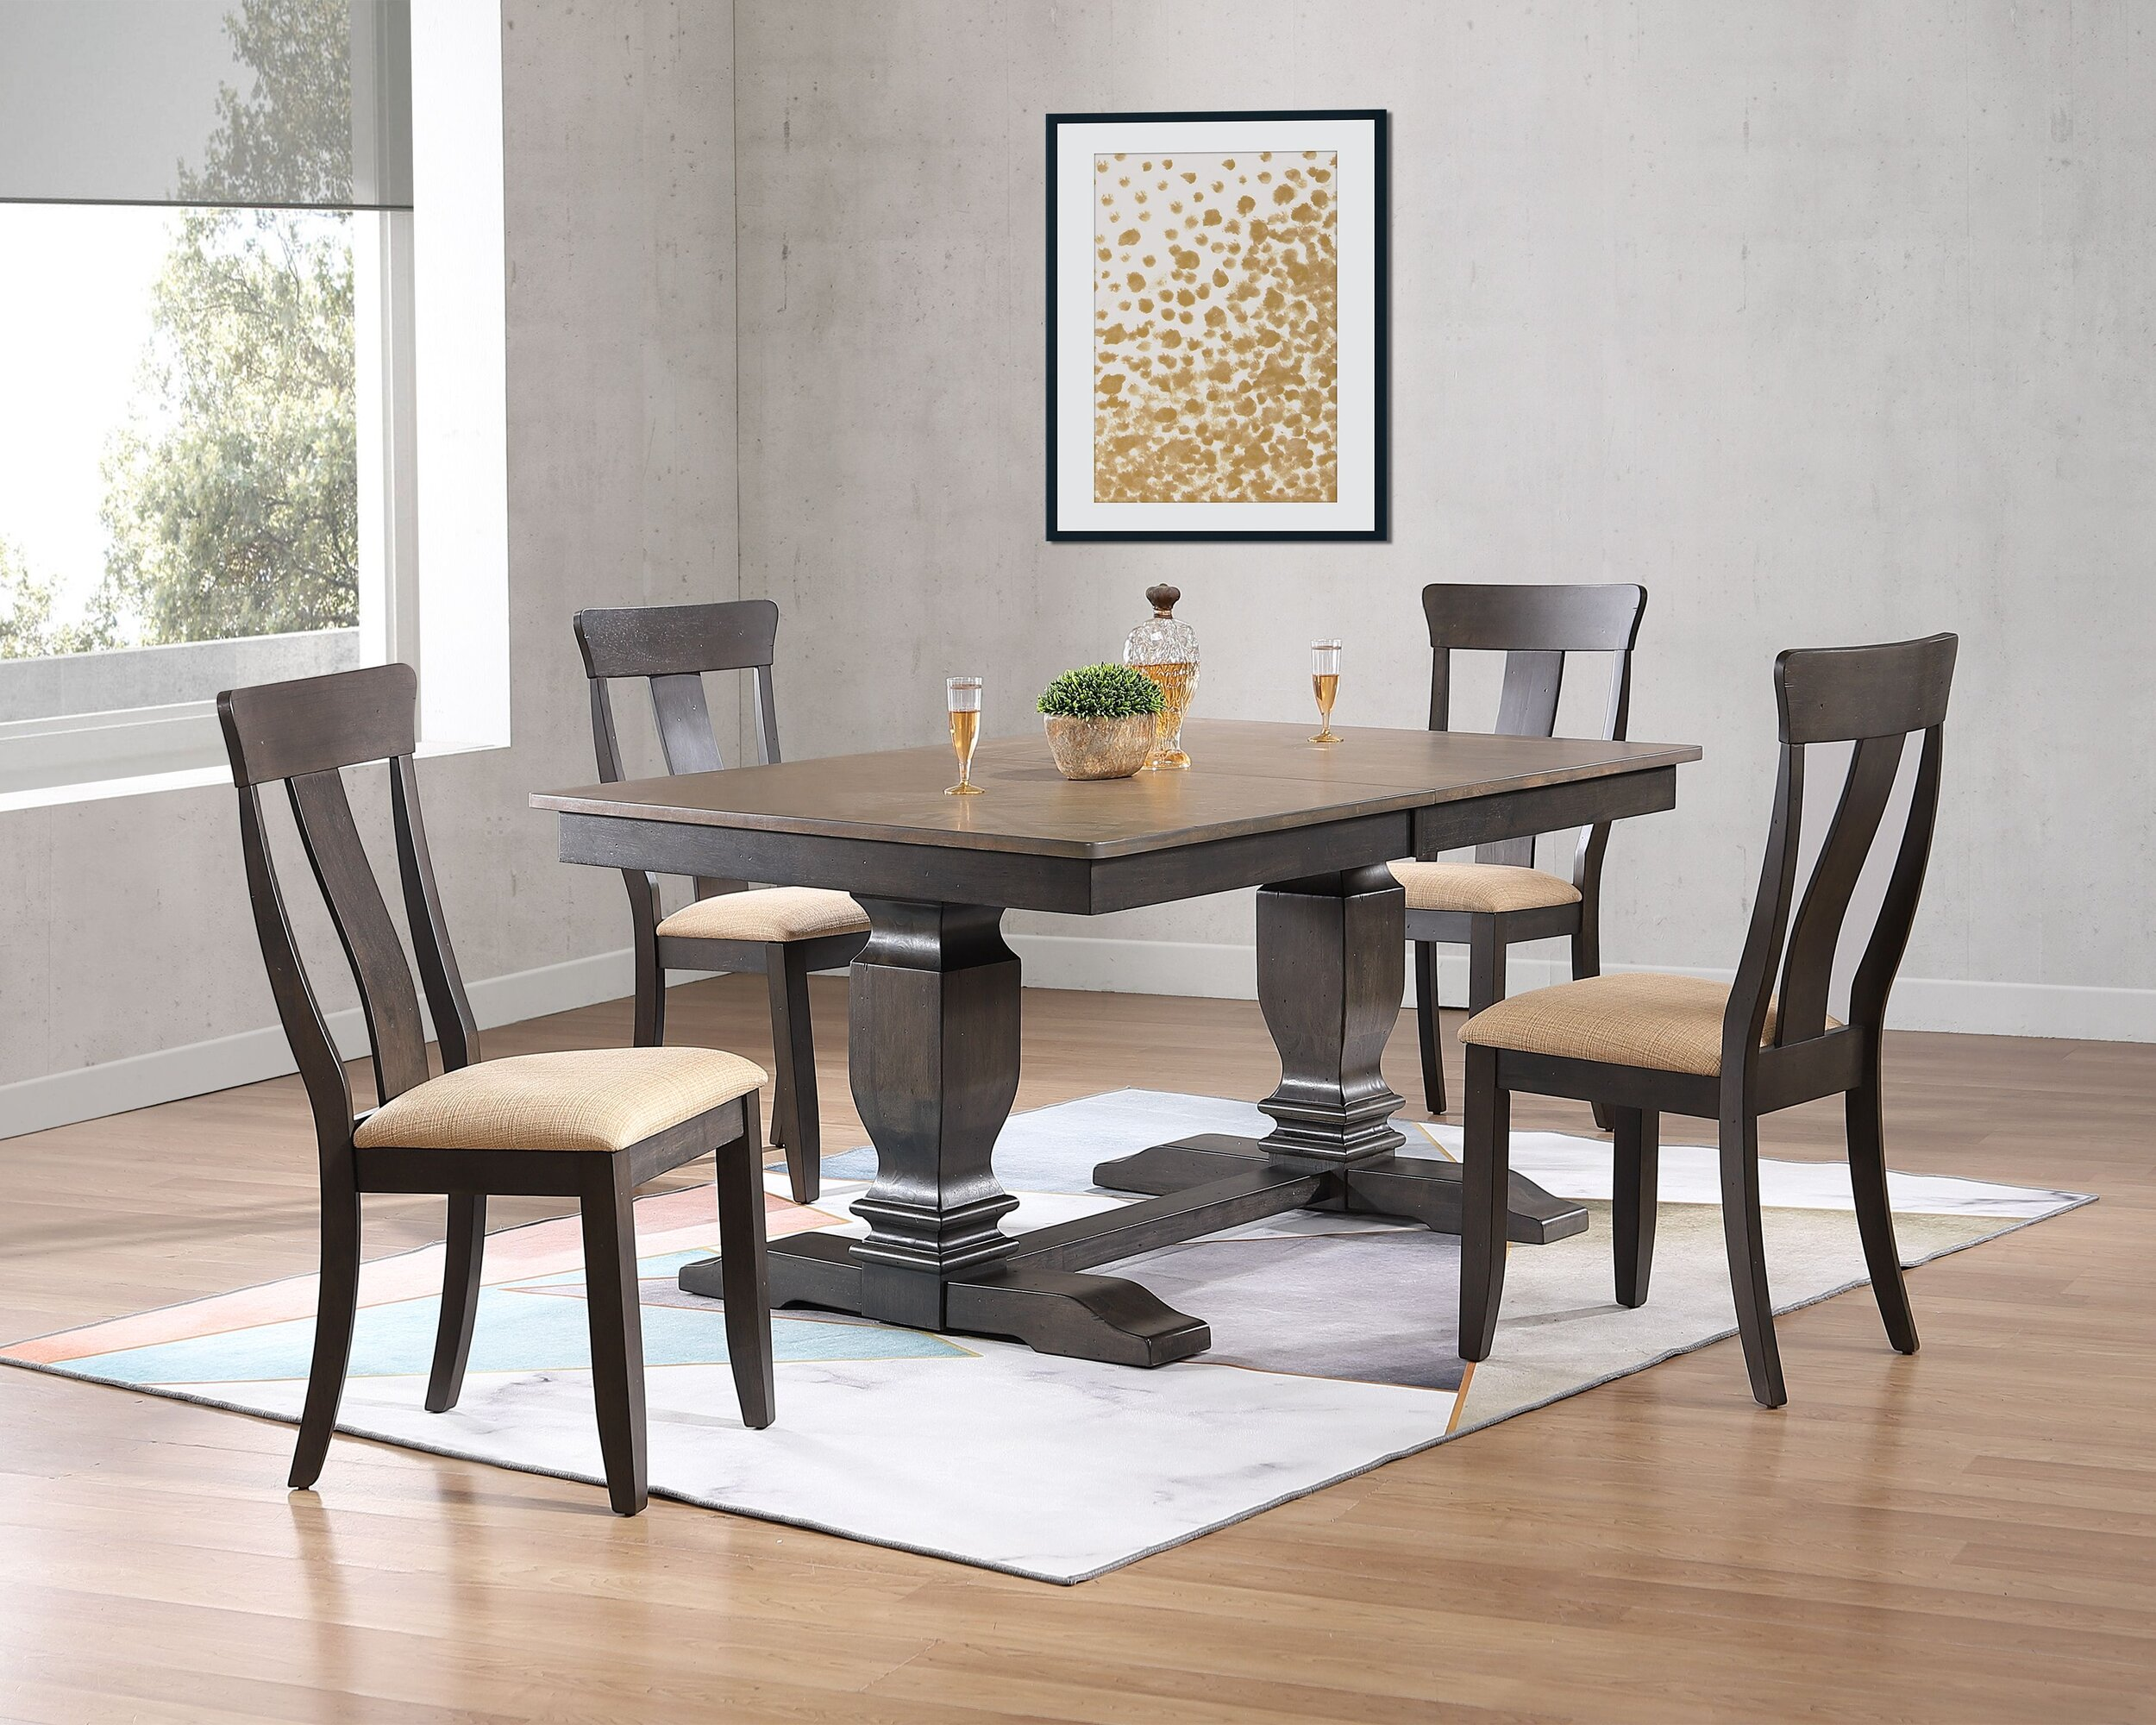 """42""""x64""""x82"""" Double Transitional Pedestal Antique Grey Stone Black Stone Upholstered Panel Back 5-Piece Dining Set"""